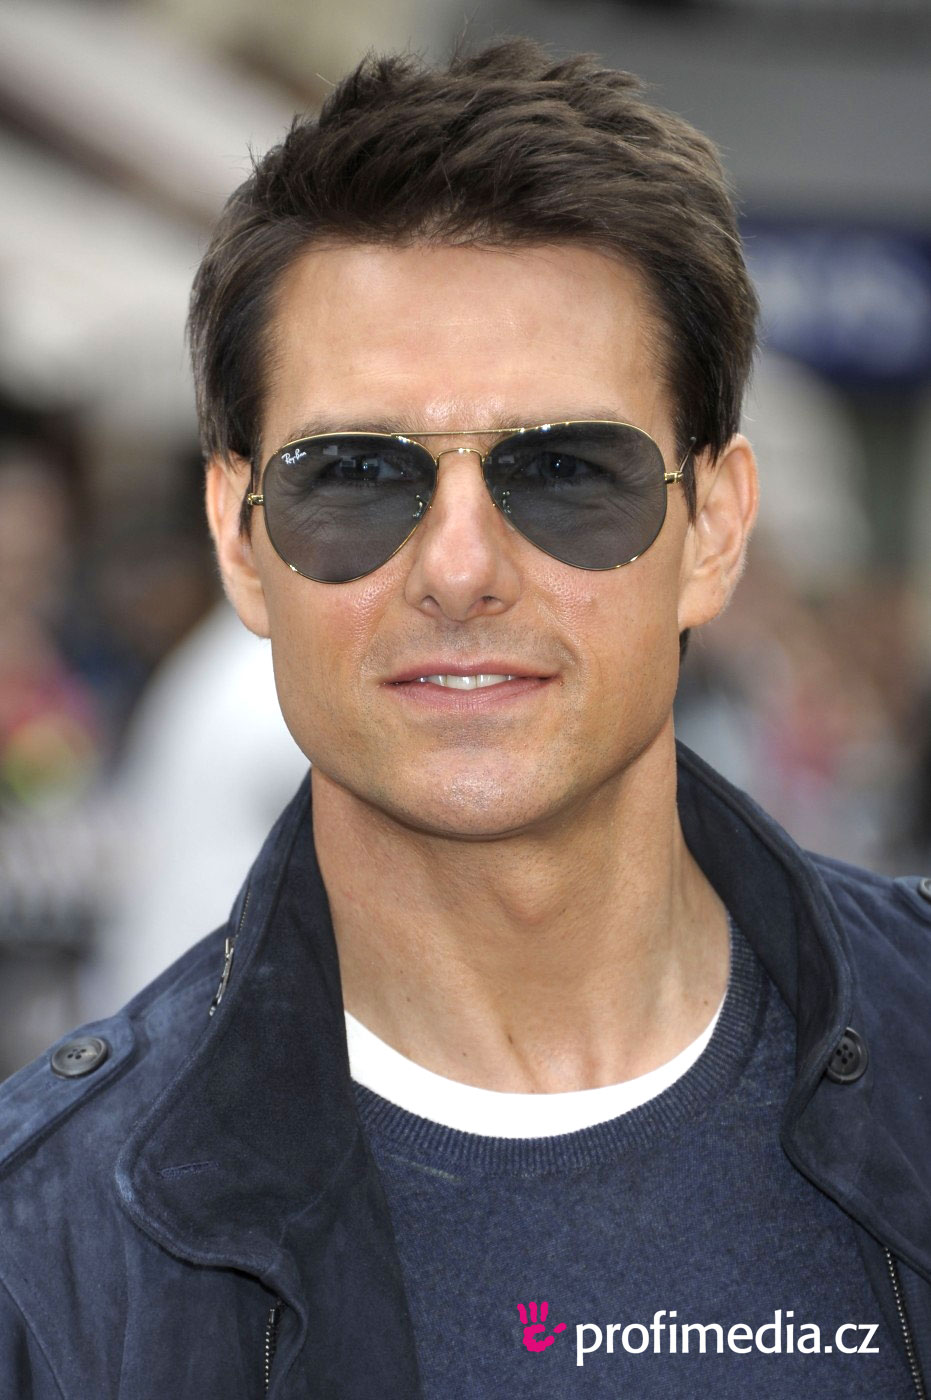 Tom cruise hairstyle easyhairstyler you can try this tom cruises hairstyle with your own photo upload at easyhairstyler urmus